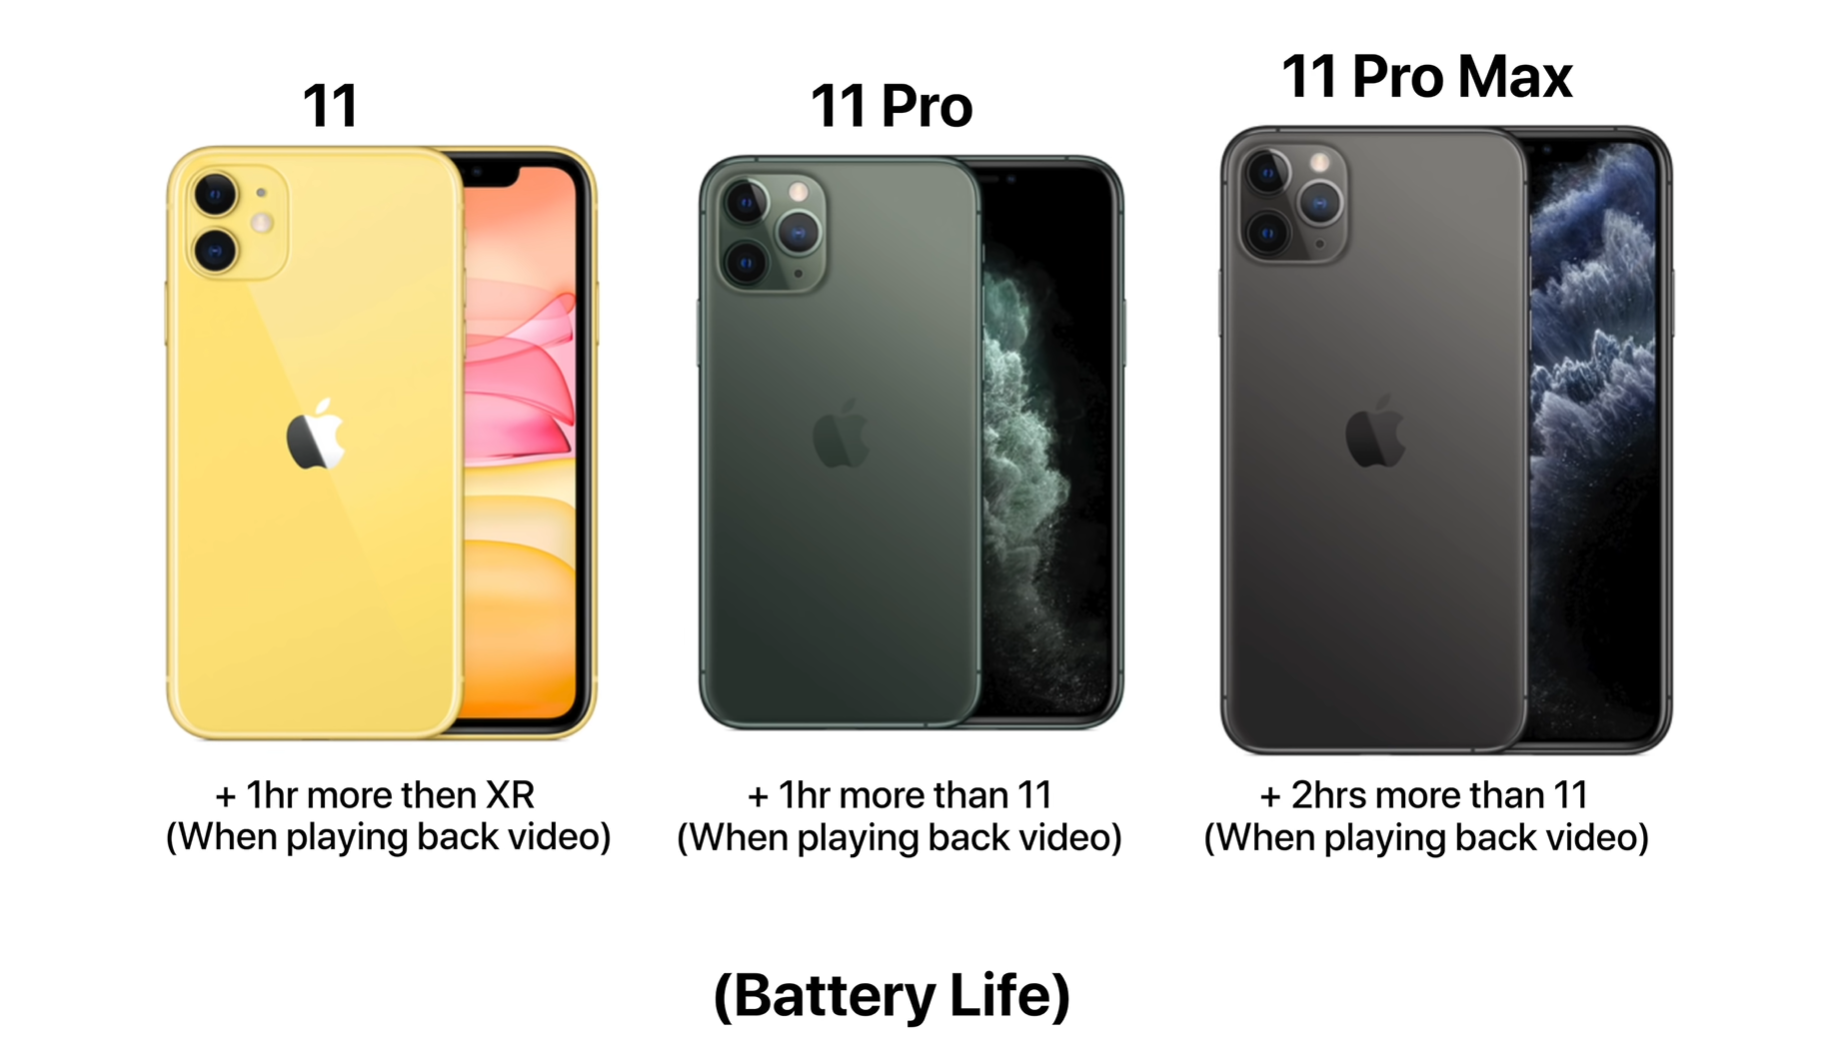 A breakdown of the battery lives of each of the new iPhones